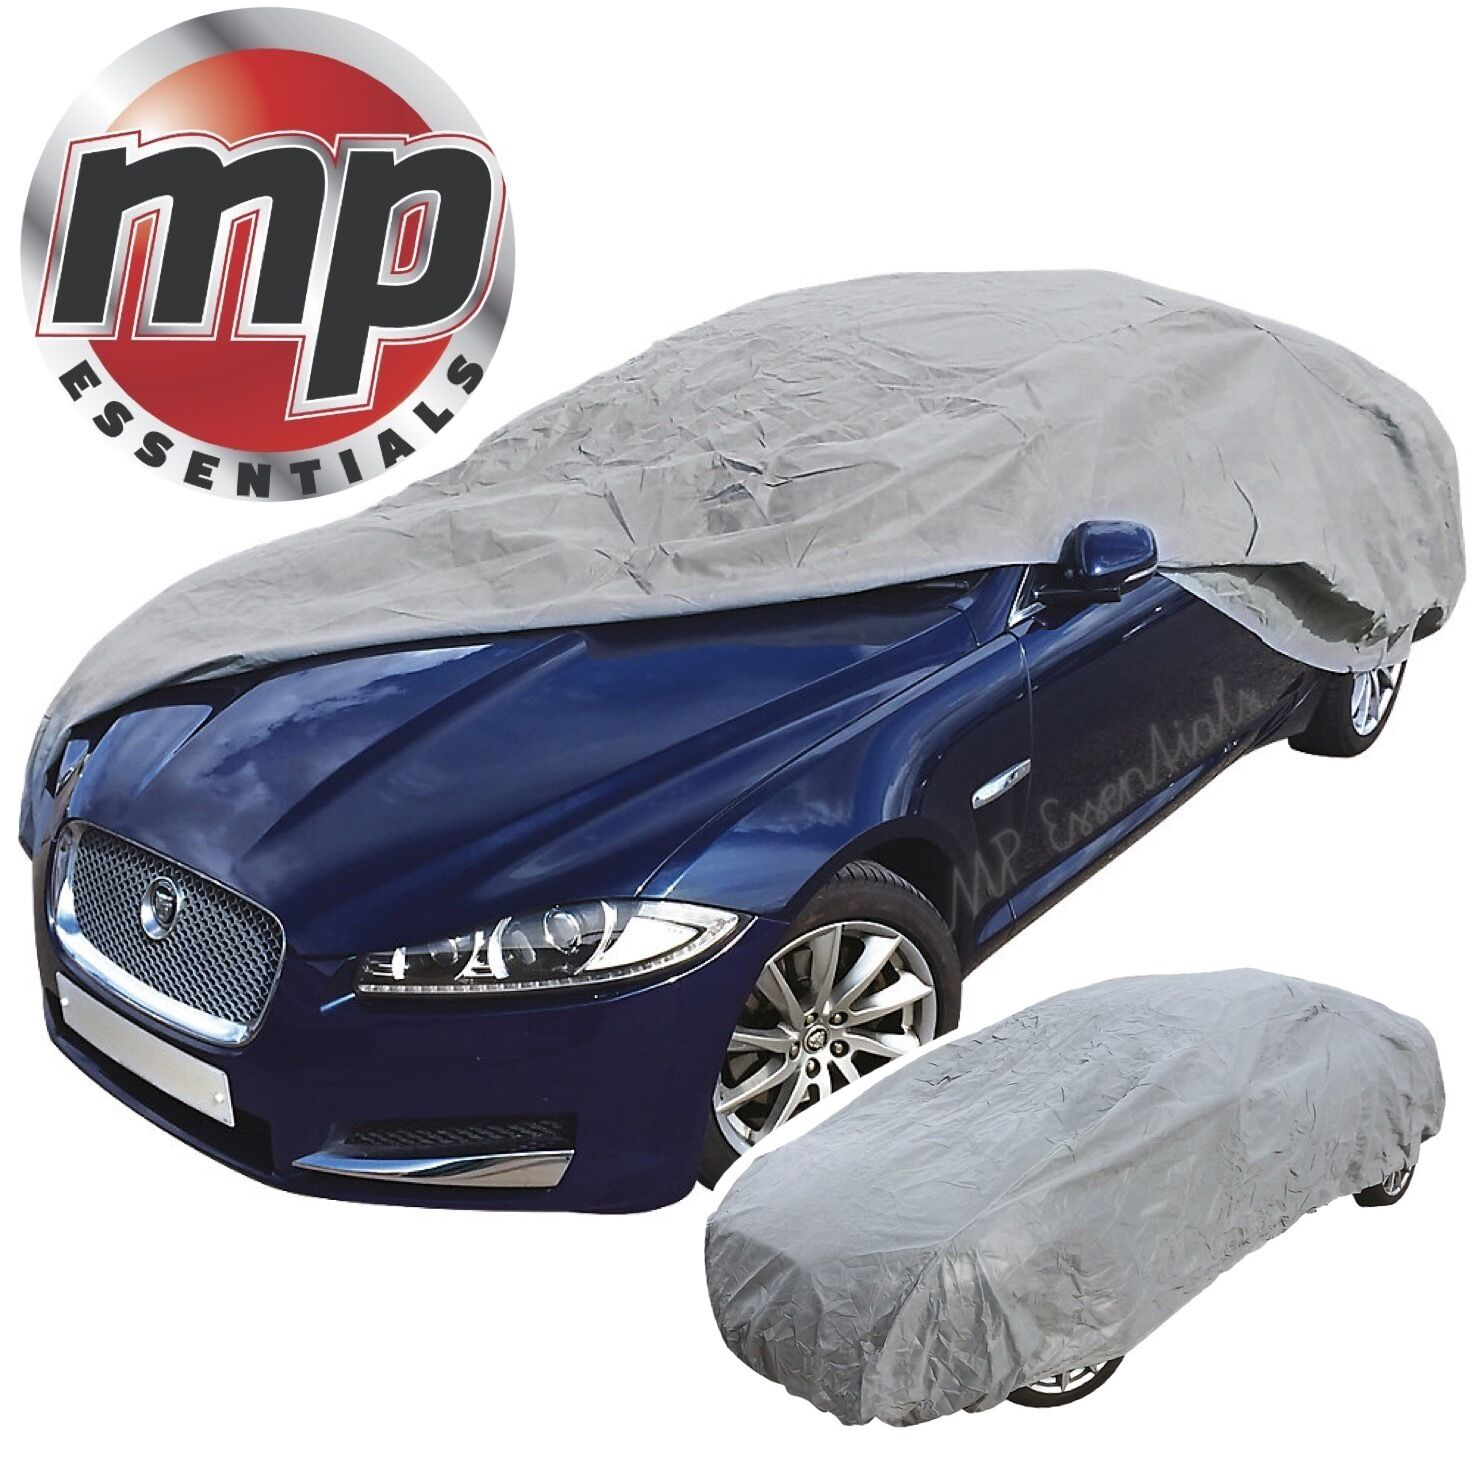 HEAVYDUTY FULLY WATERPROOF CAR COVER COTTON LINED 1275 MG MIDGET